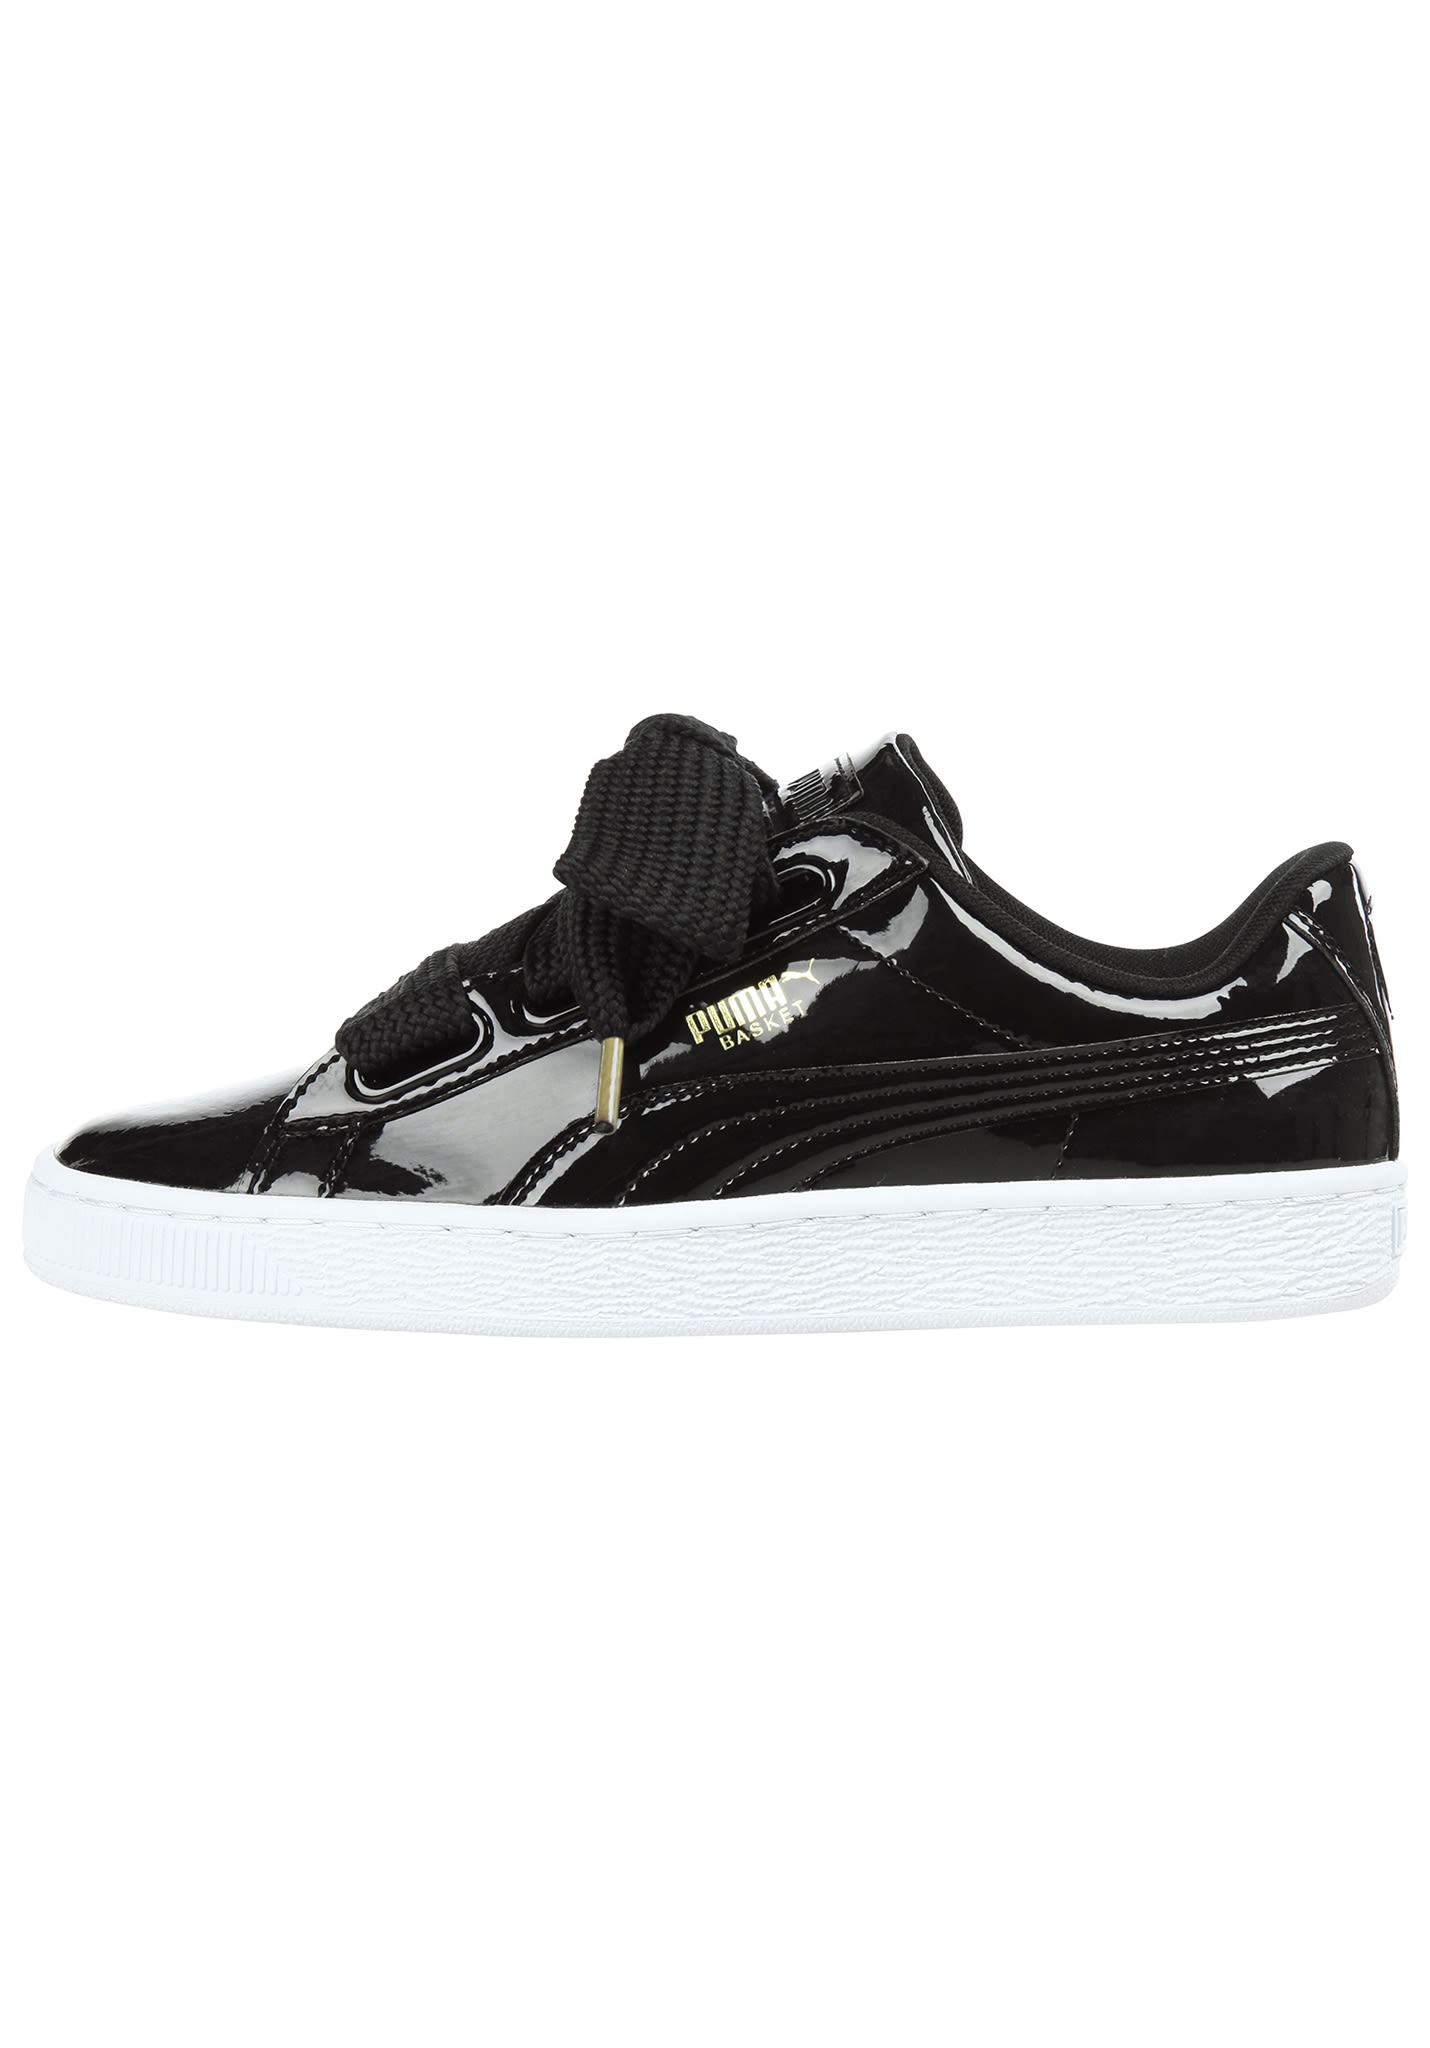 size 40 73bb4 034ea Puma Basket Heart Patent - Sneakers for Women - Black